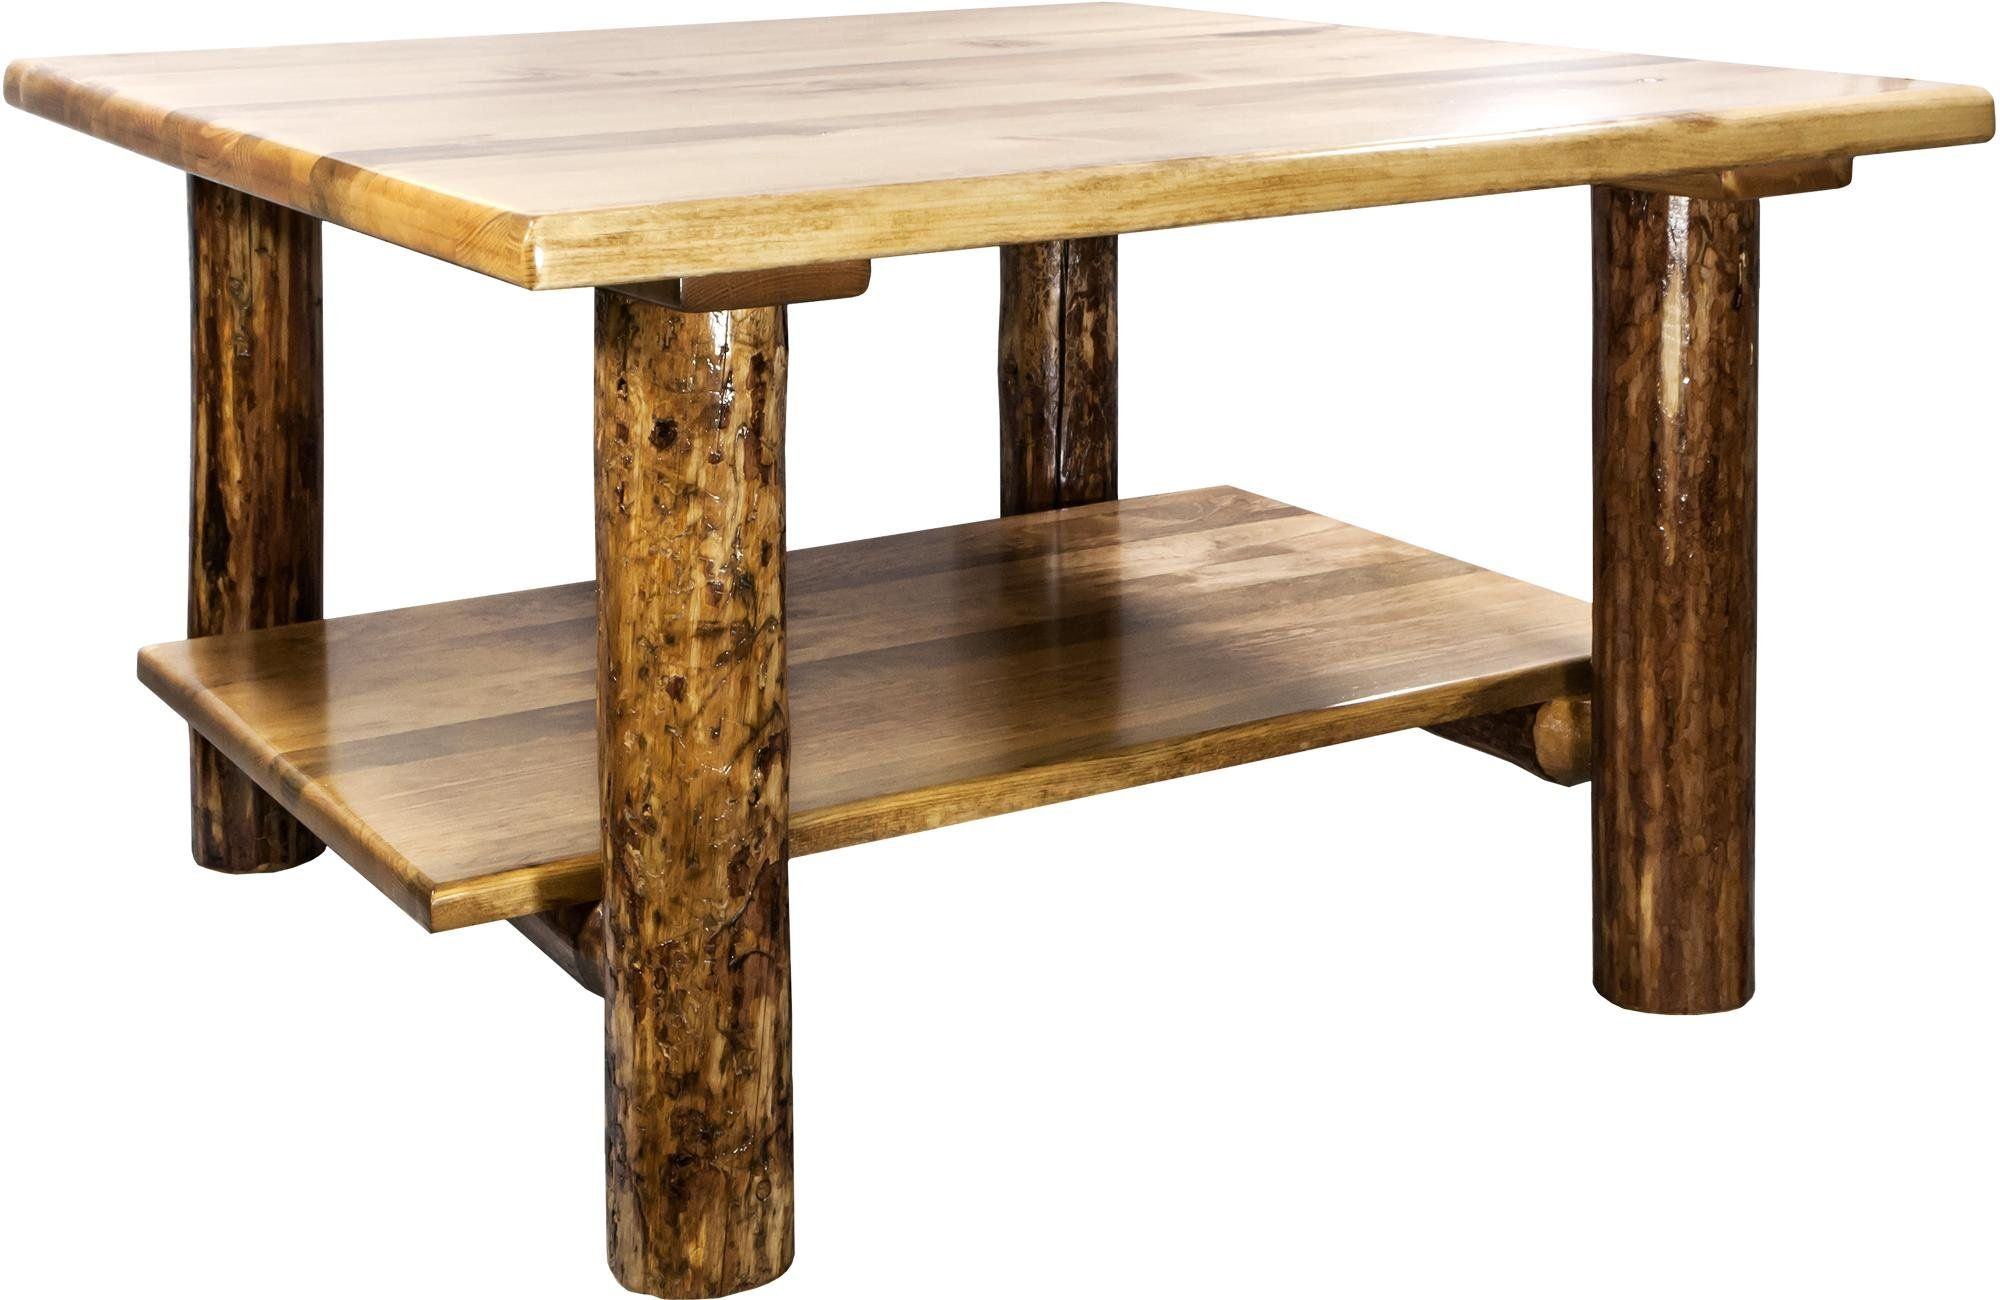 Cocktail Table Glacier Country Wood Cocktail Table Pine Coffee Table Modern Counter Stools [ 1300 x 2000 Pixel ]